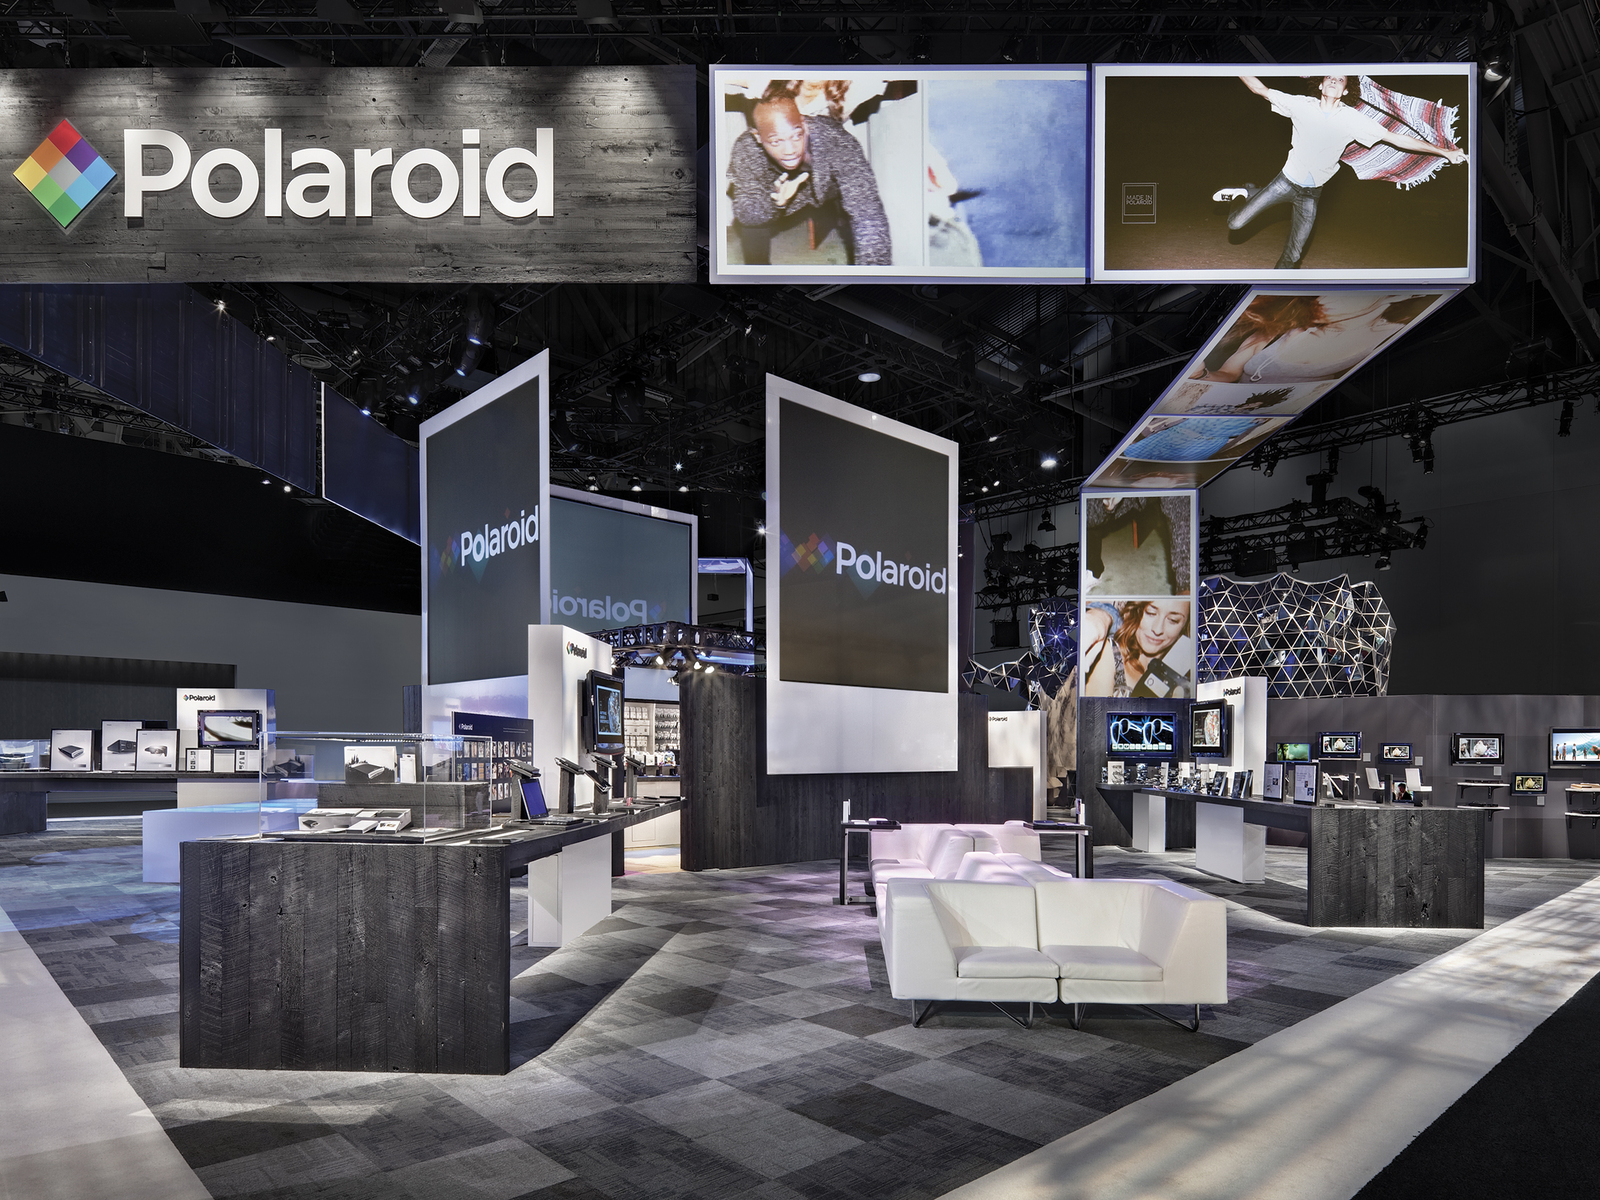 polaroid custom trade show exhibit - Booth Design Ideas